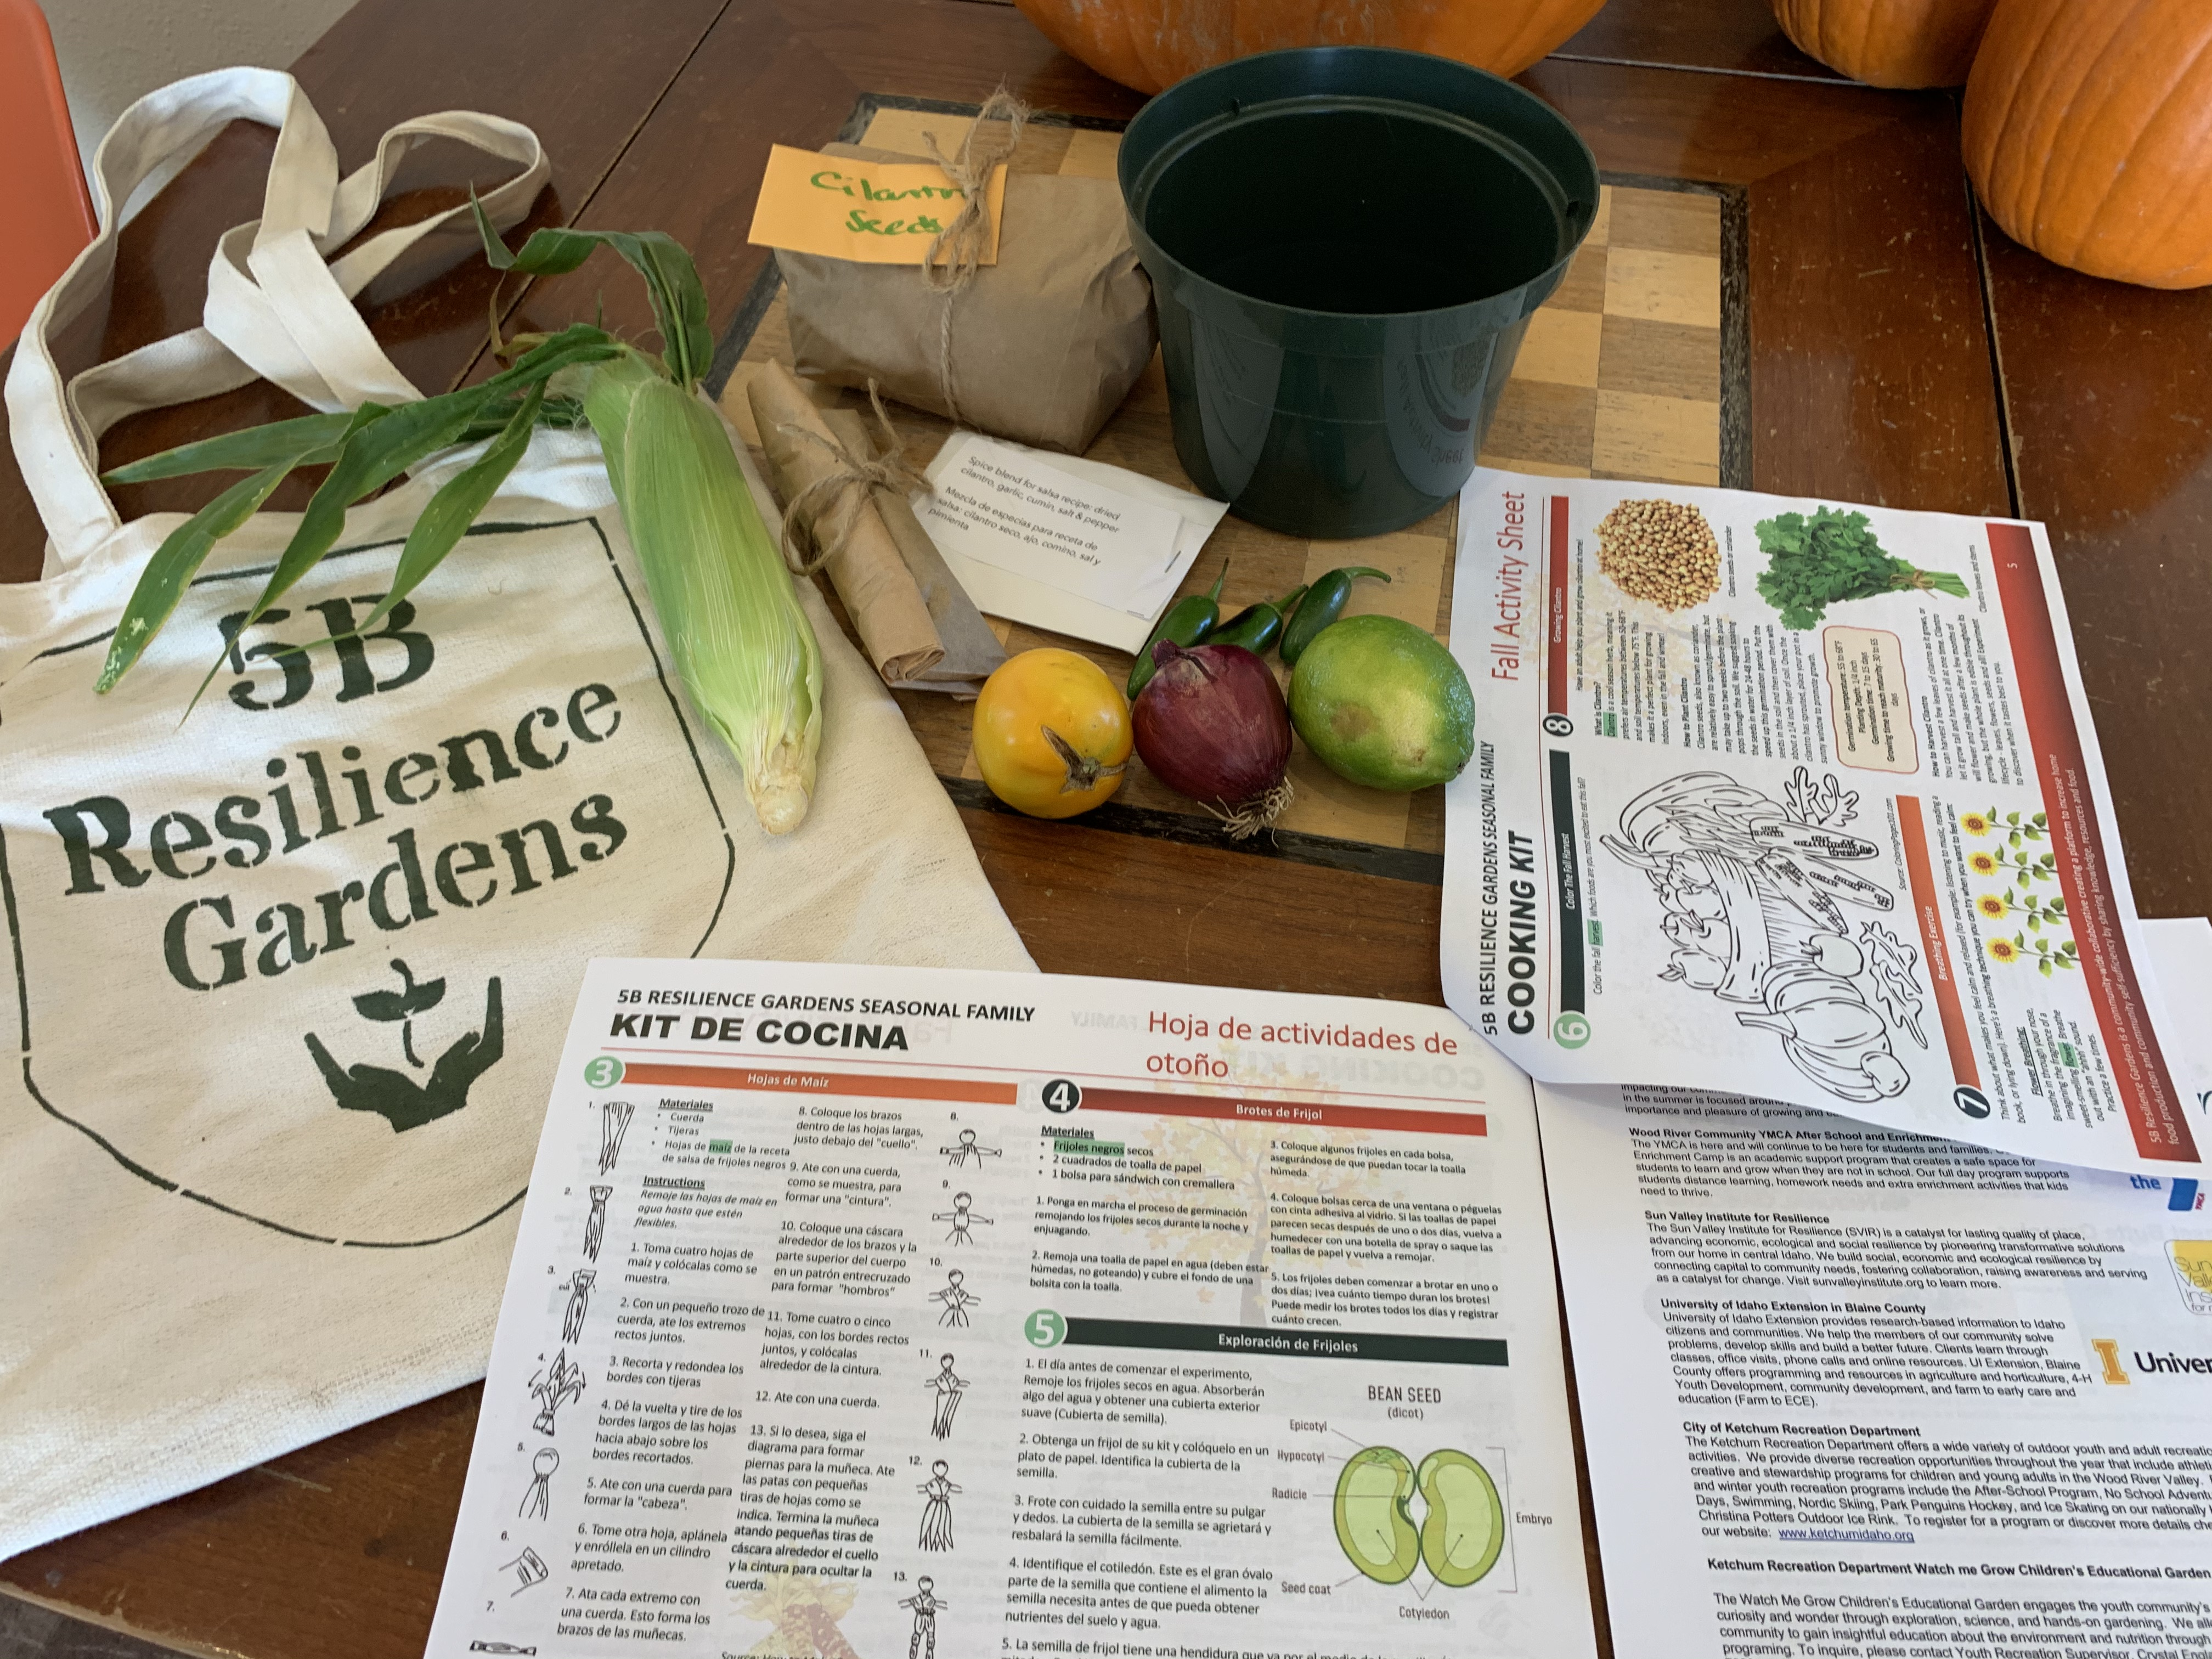 Full SPROUT kit offering with canvas bag, local produce, soil, pot, and activity packet in Spanish and English